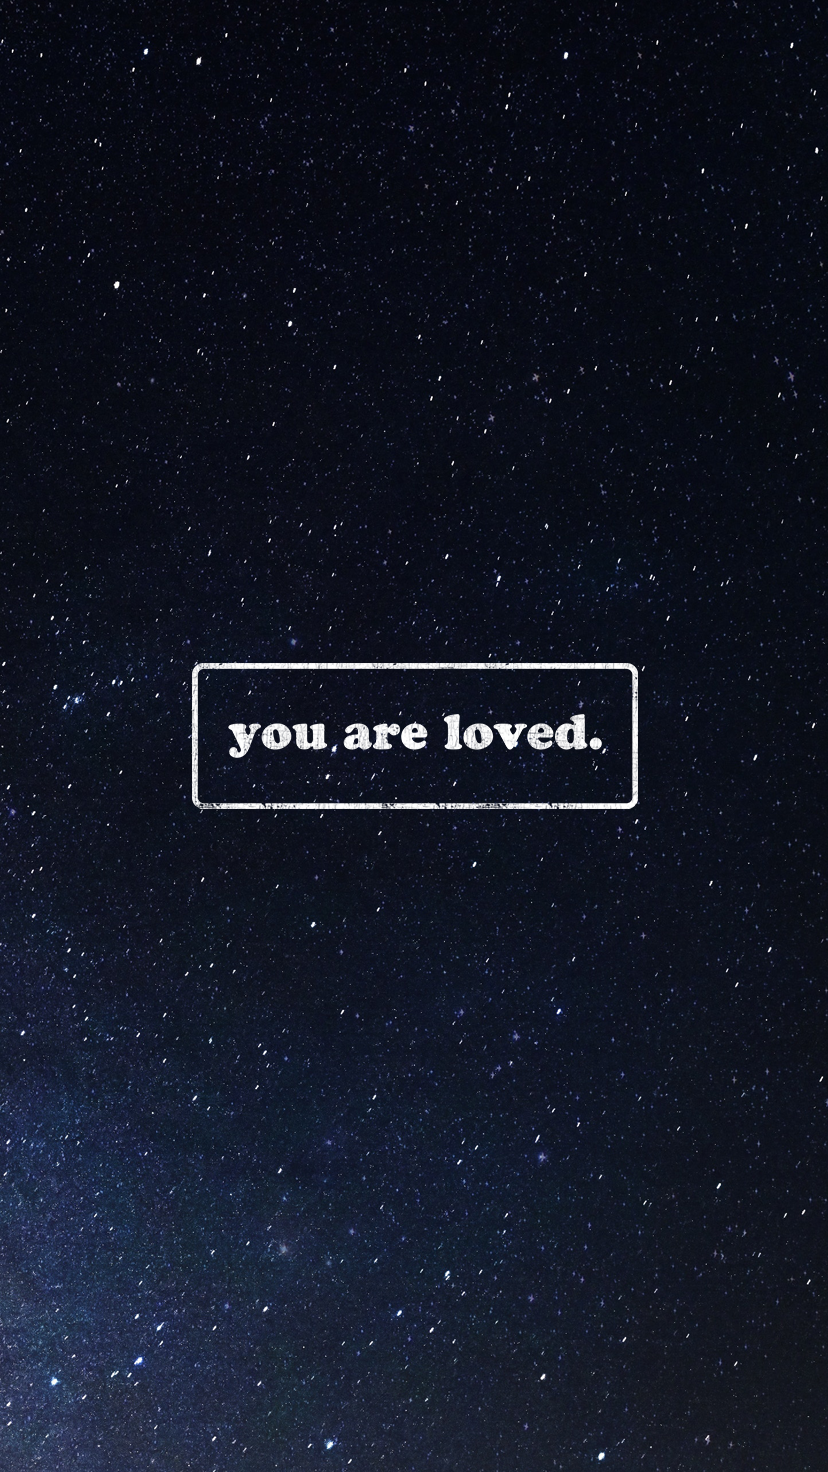 you-are-loved-iphone.png